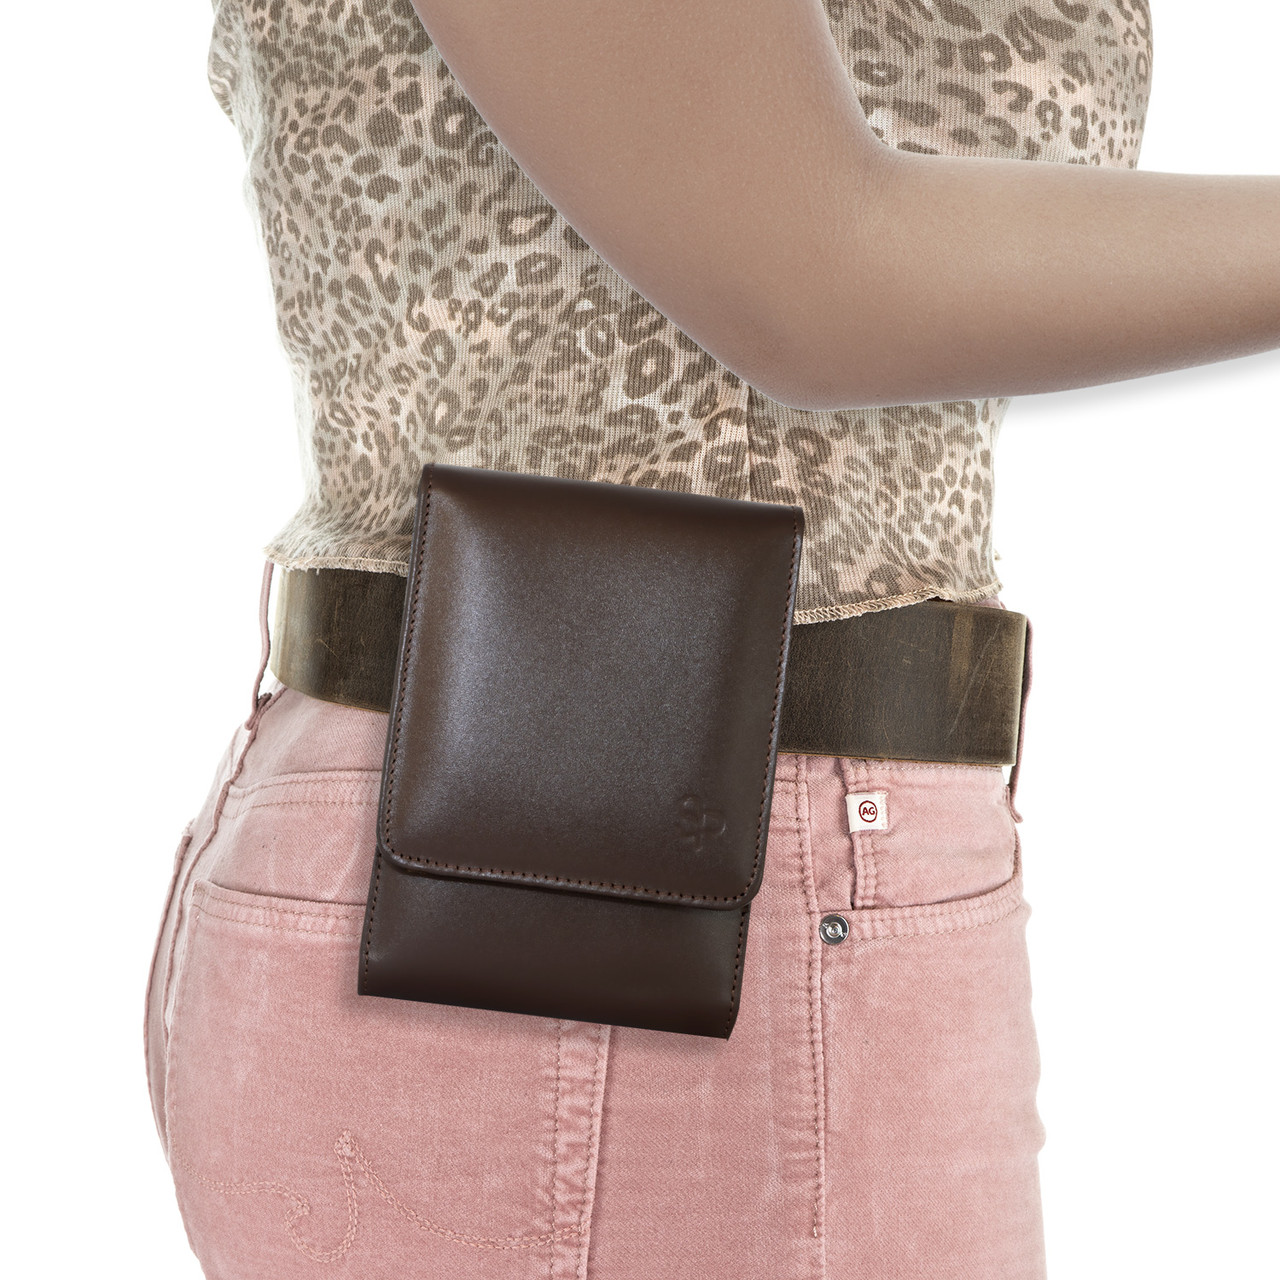 Springfield Ultra Compact Brown Leather Series Holster